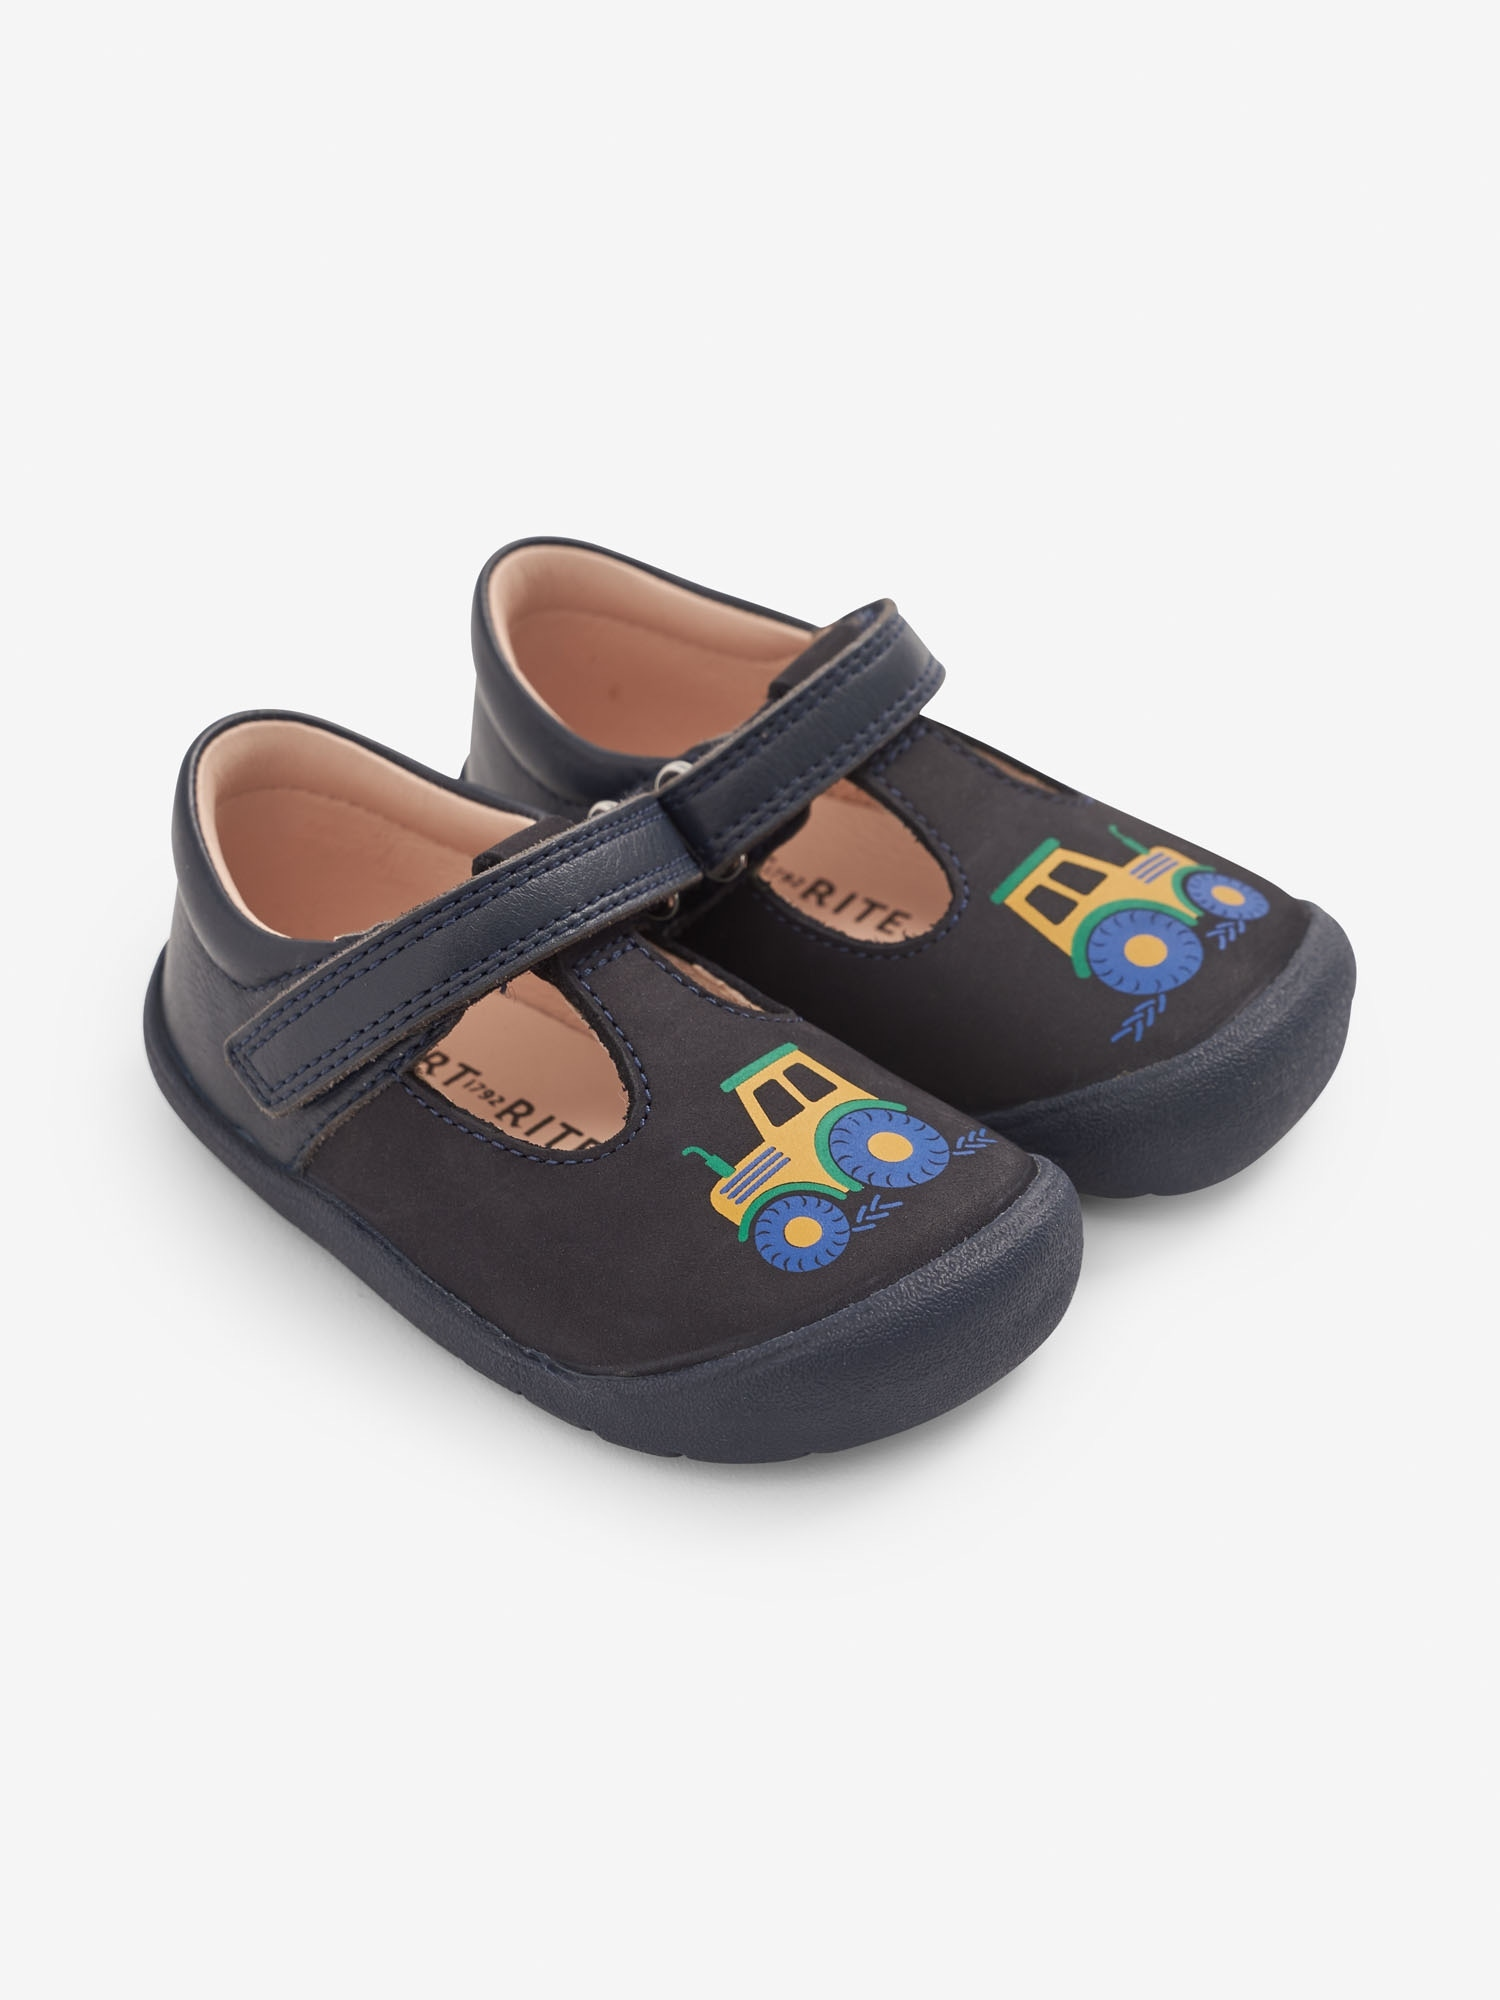 Start-Rite Navy Tractor First Steps Shoes